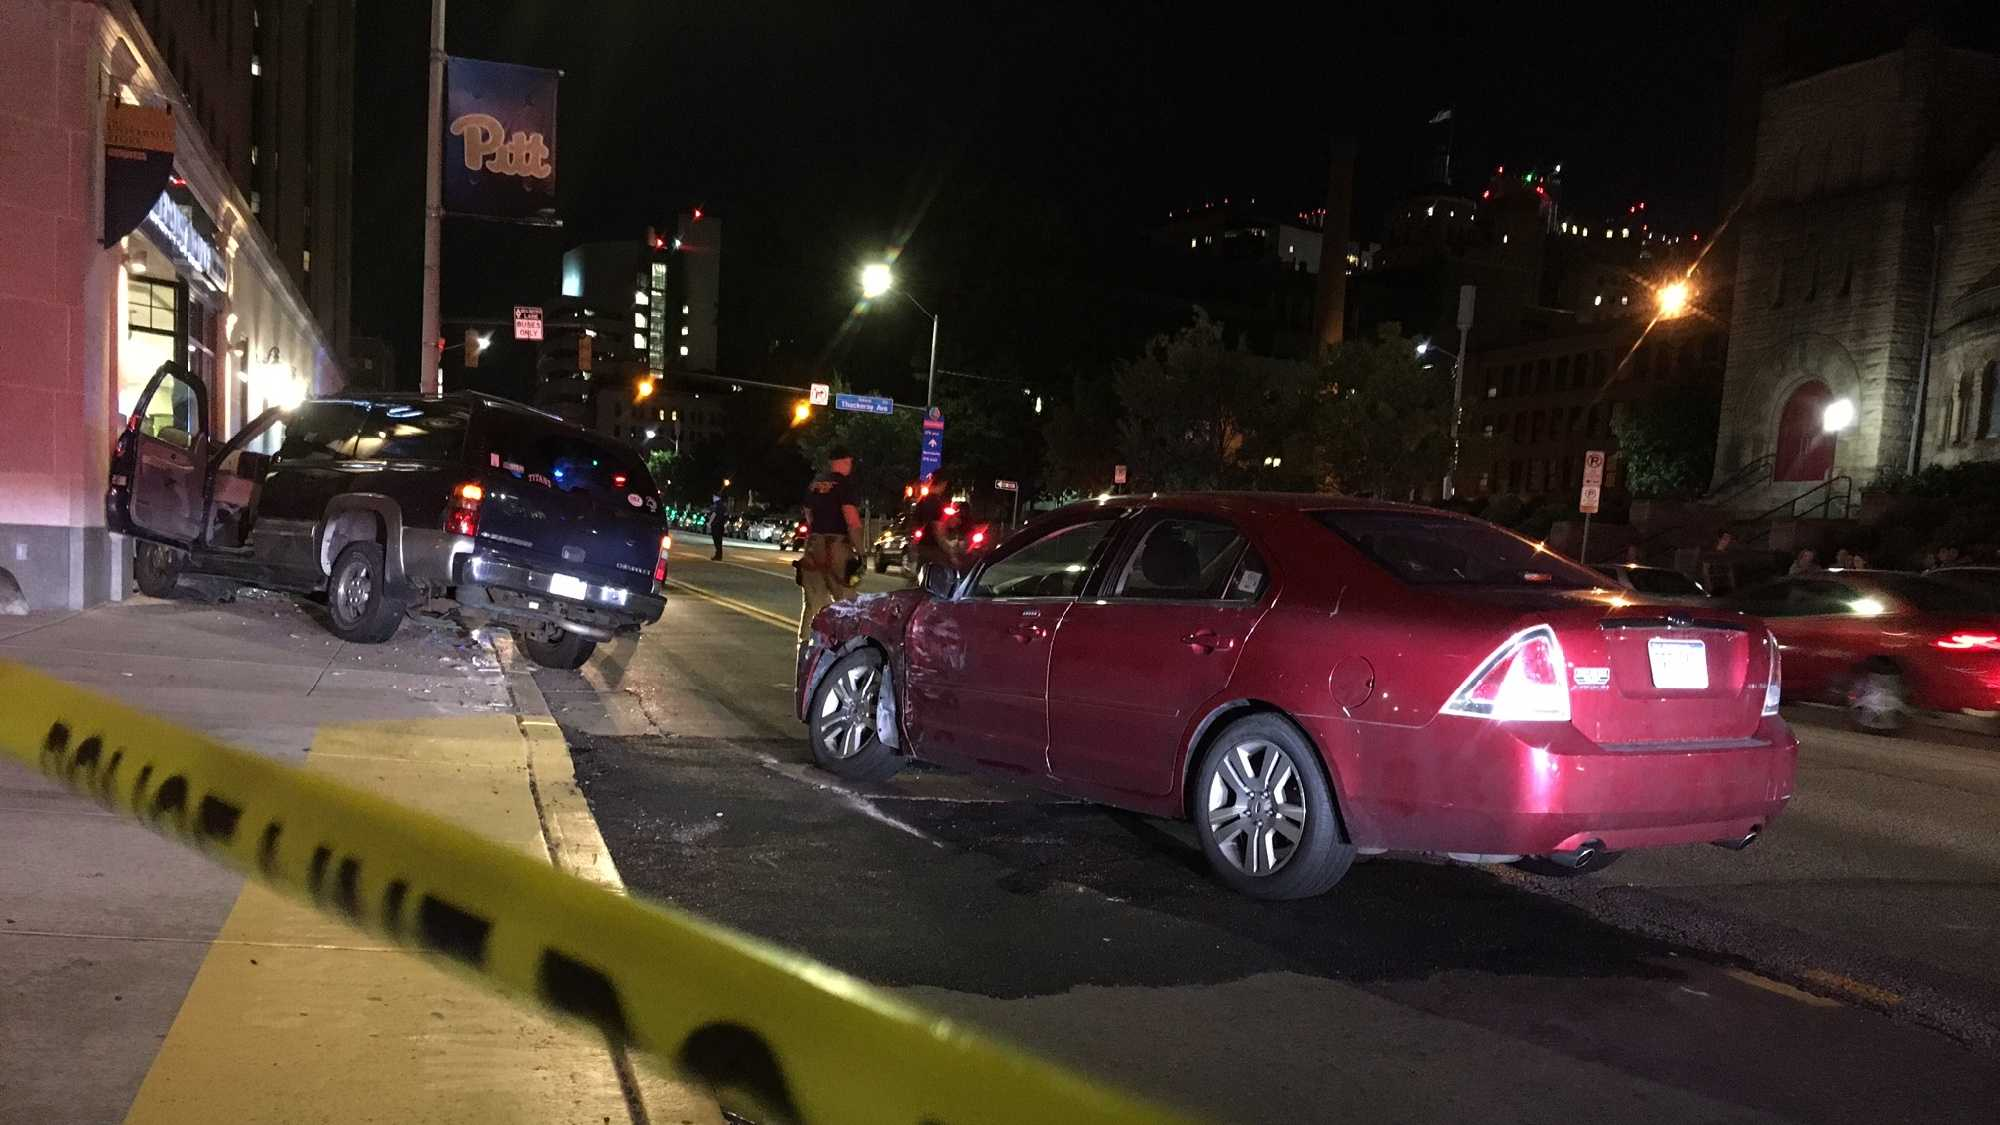 Three people were injured when a car crashed into a University of Pittsburgh bookstore late Saturday night.